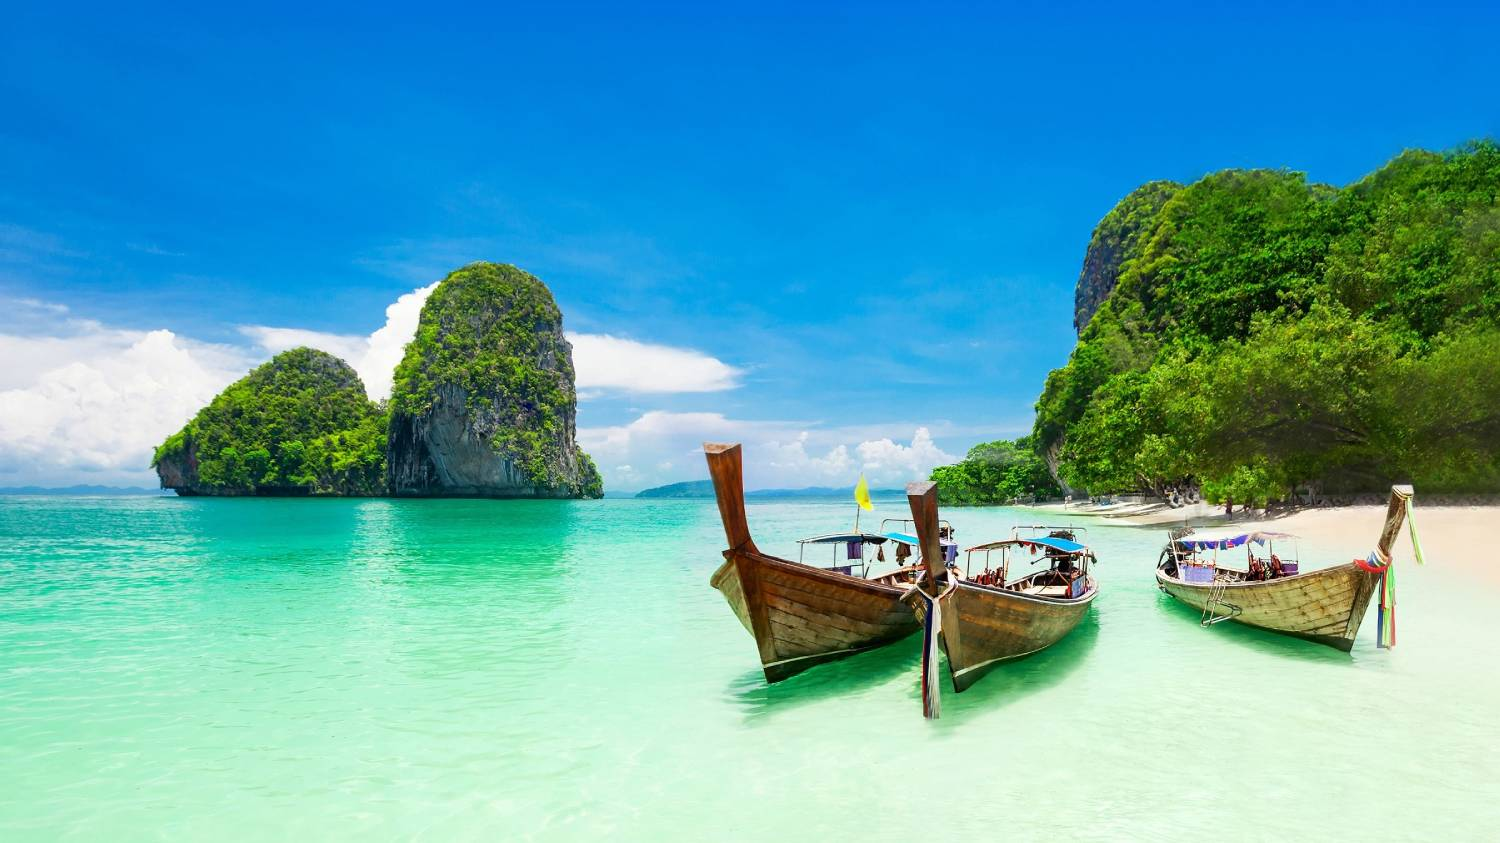 Krabi - The Best Places To Visit In Thailand